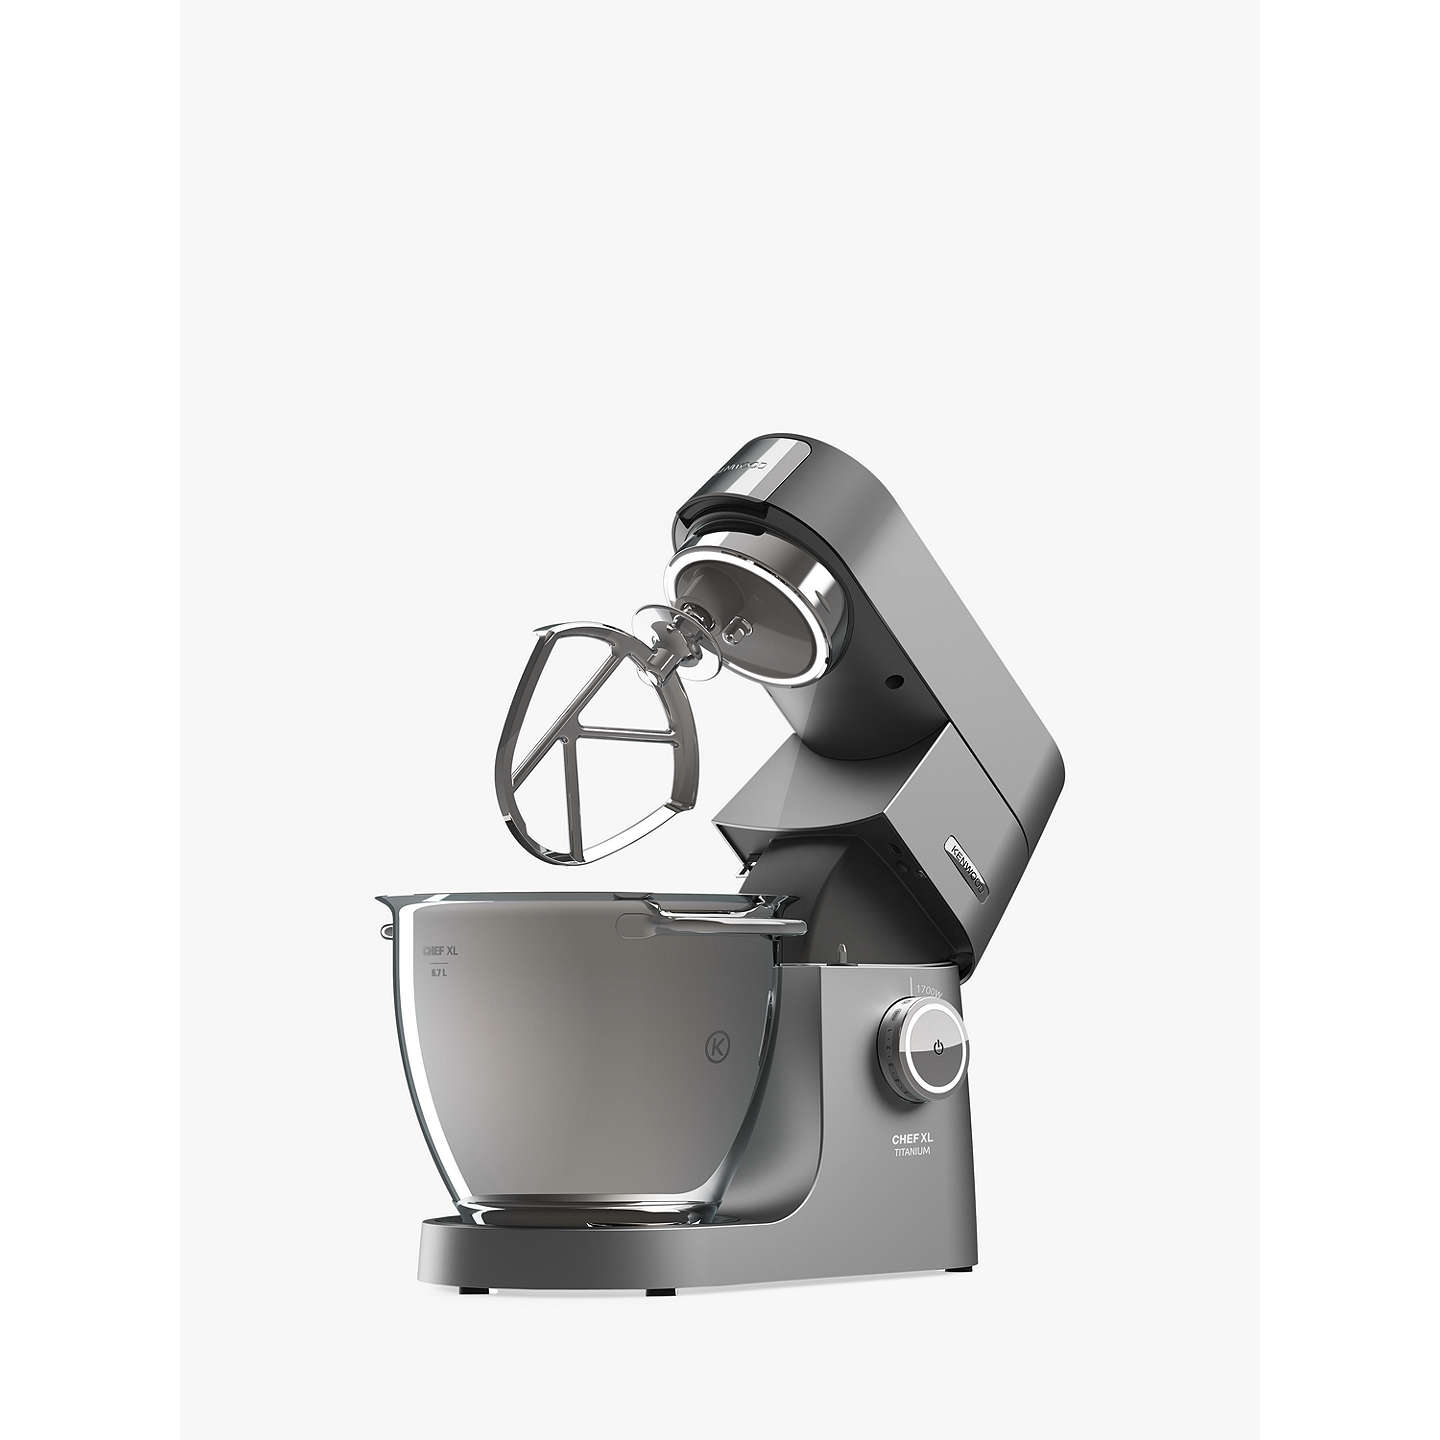 BuyKenwood KVL8300S Chef Titanium XL Stand Mixer, Silver Online at johnlewis.com